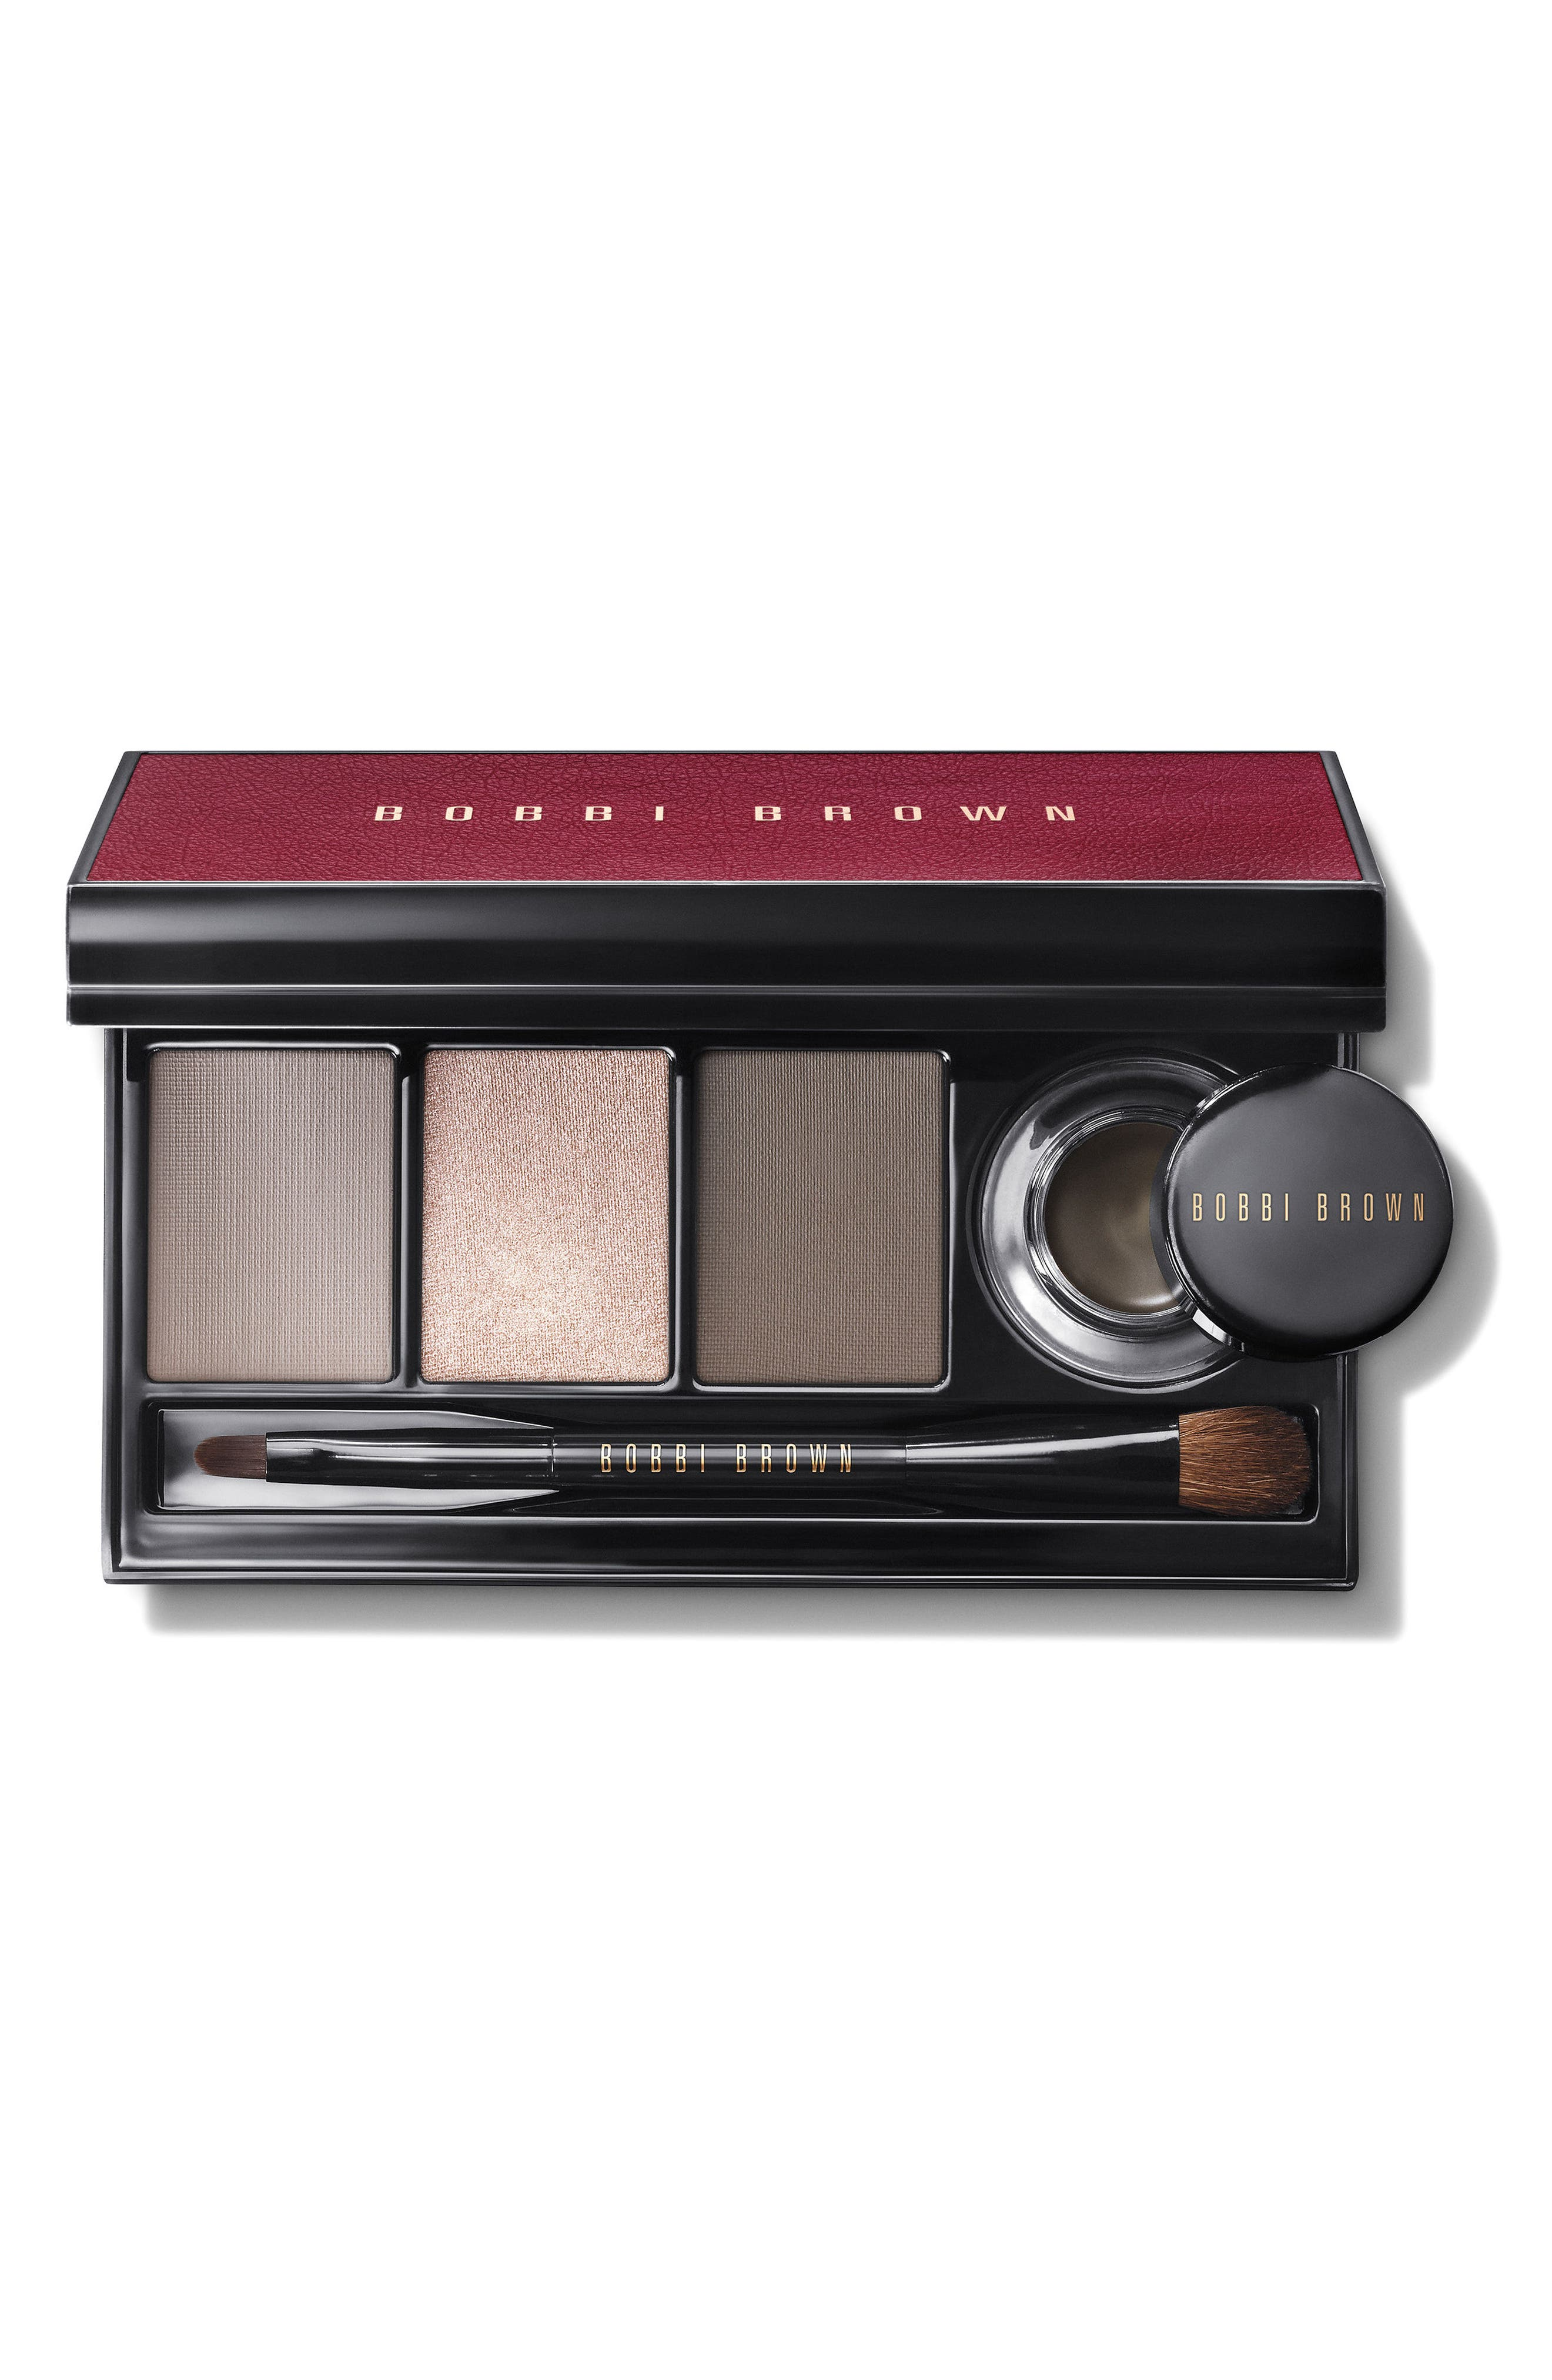 Bobbi Brown Satin & Caviar Eyeshadow & Long-Wear Gel Eyeliner Palette ($106 Value)